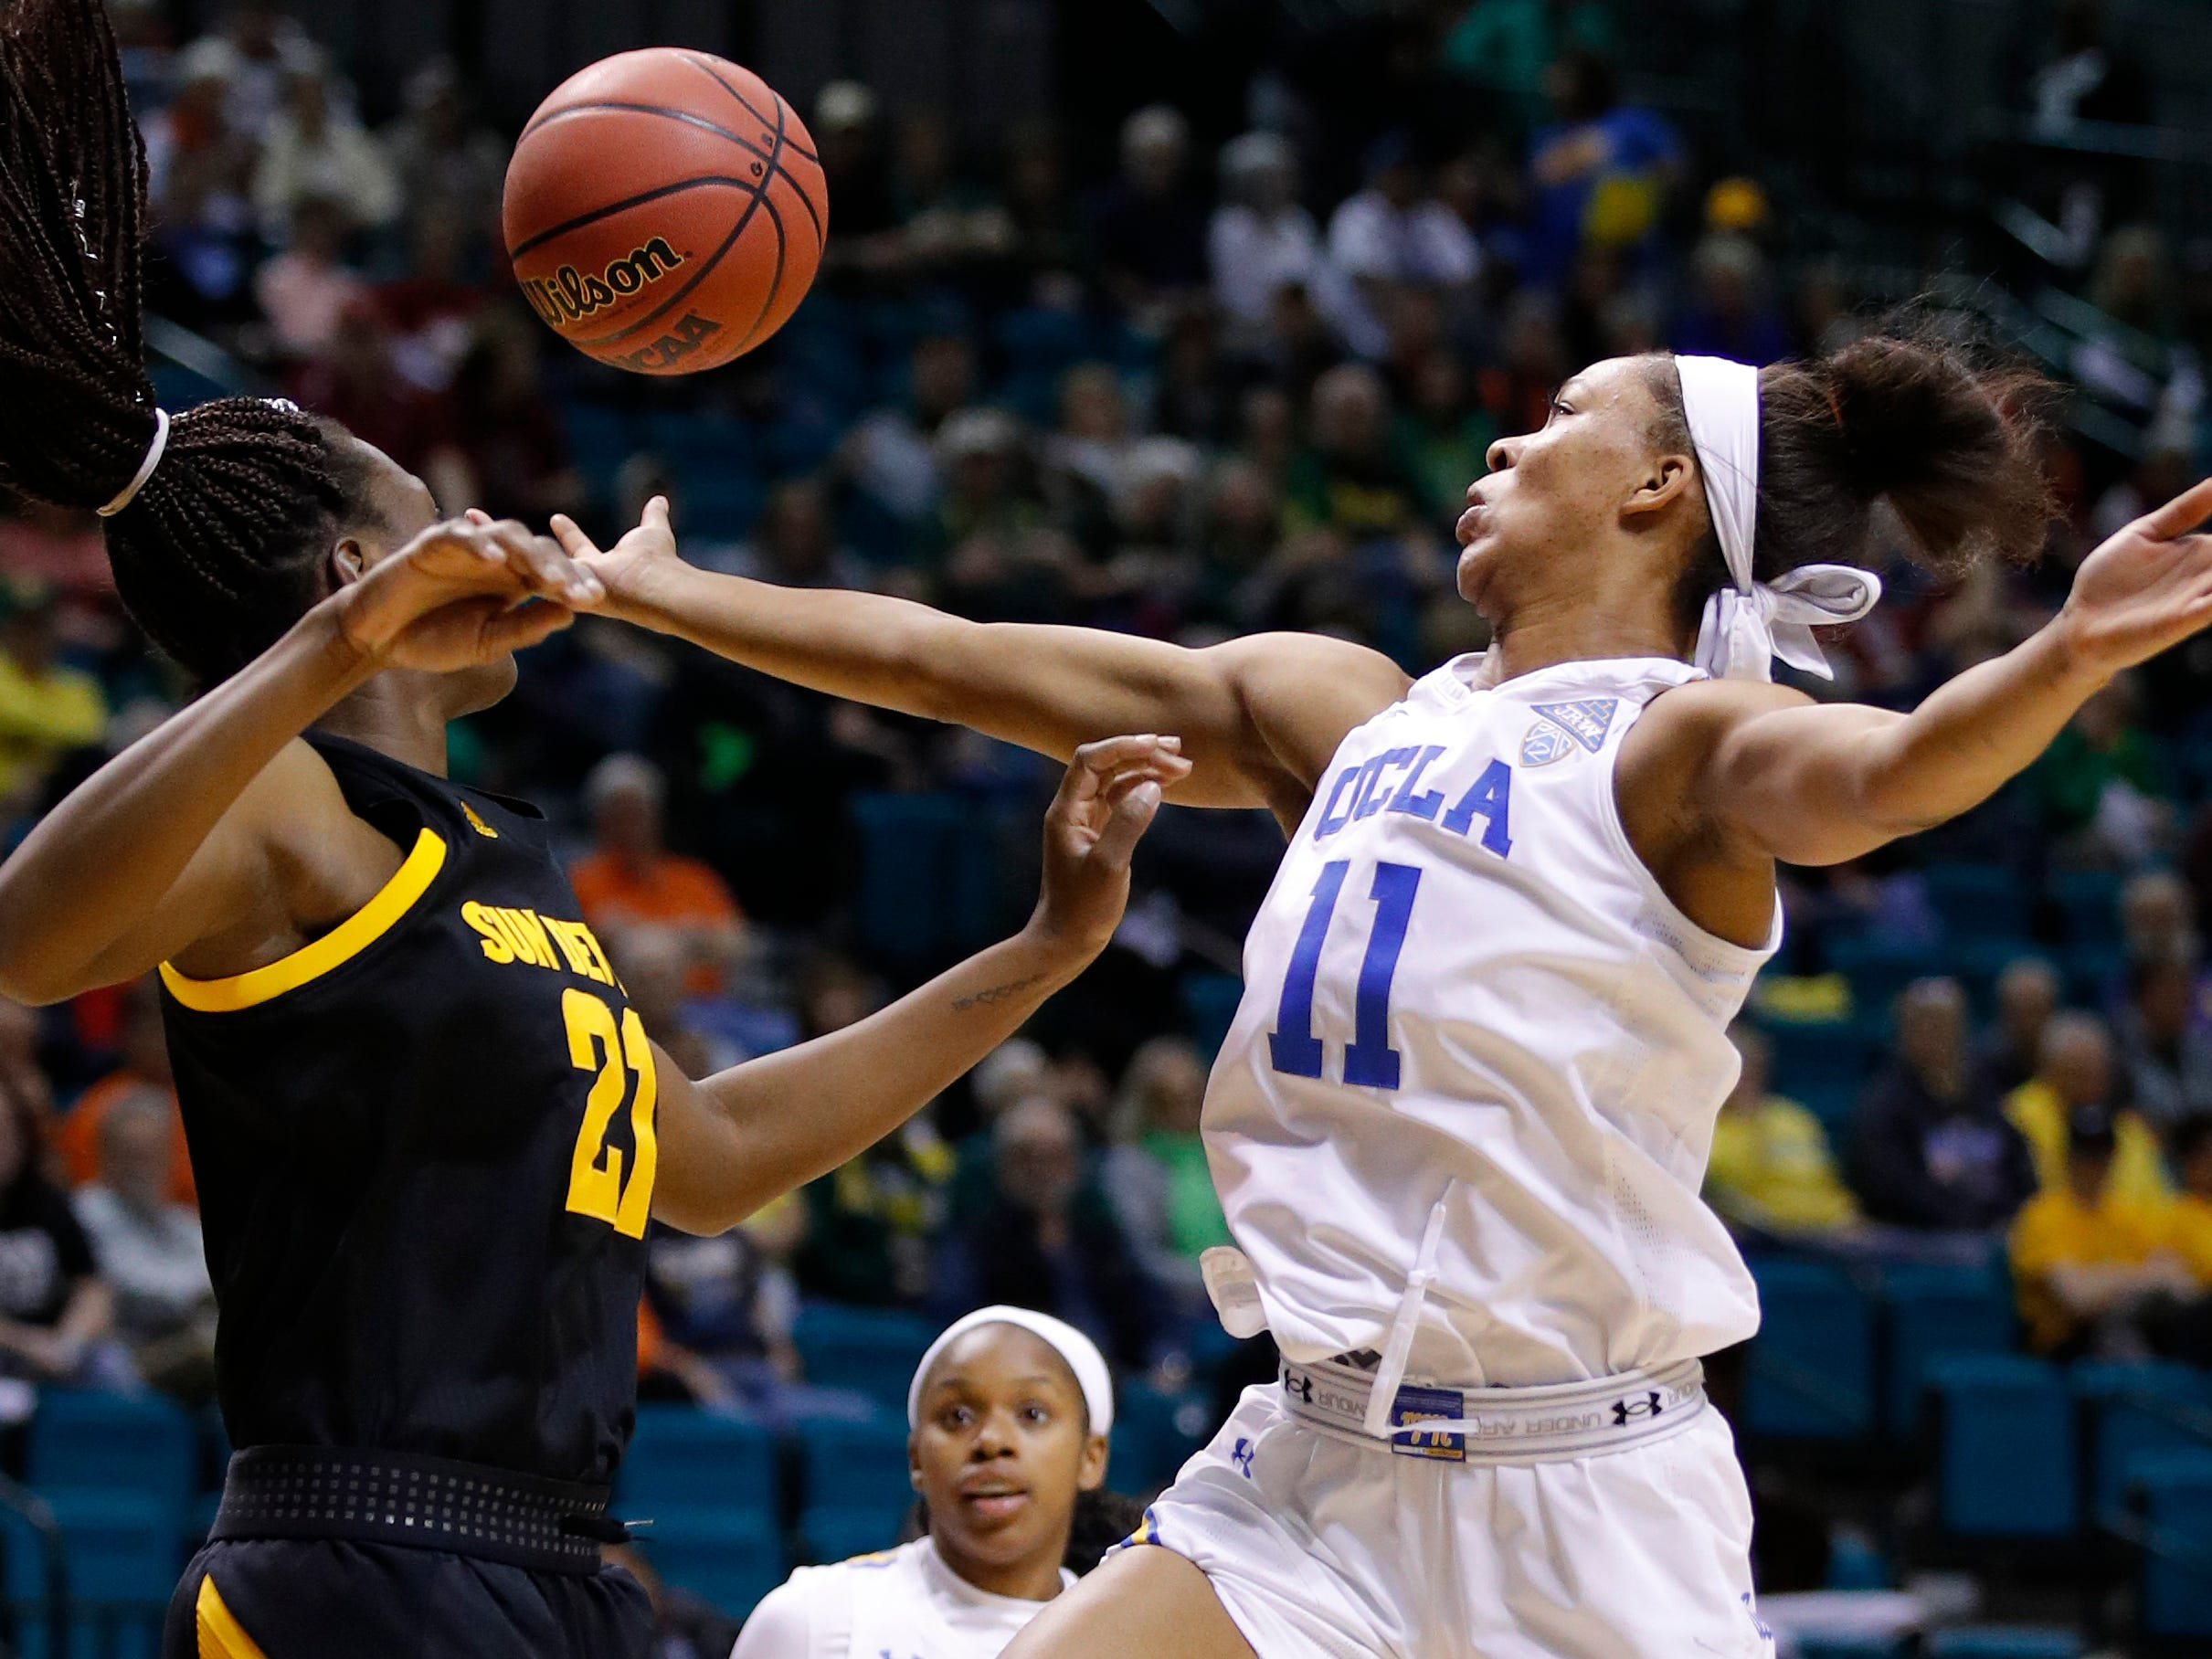 UCLA's Lajahna Drummer, right, grabs a rebound over Arizona State's Sophia Elenga during the first half of an NCAA college basketball game at the Pac-12 women's tournament Friday, March 8, 2019, in Las Vegas.